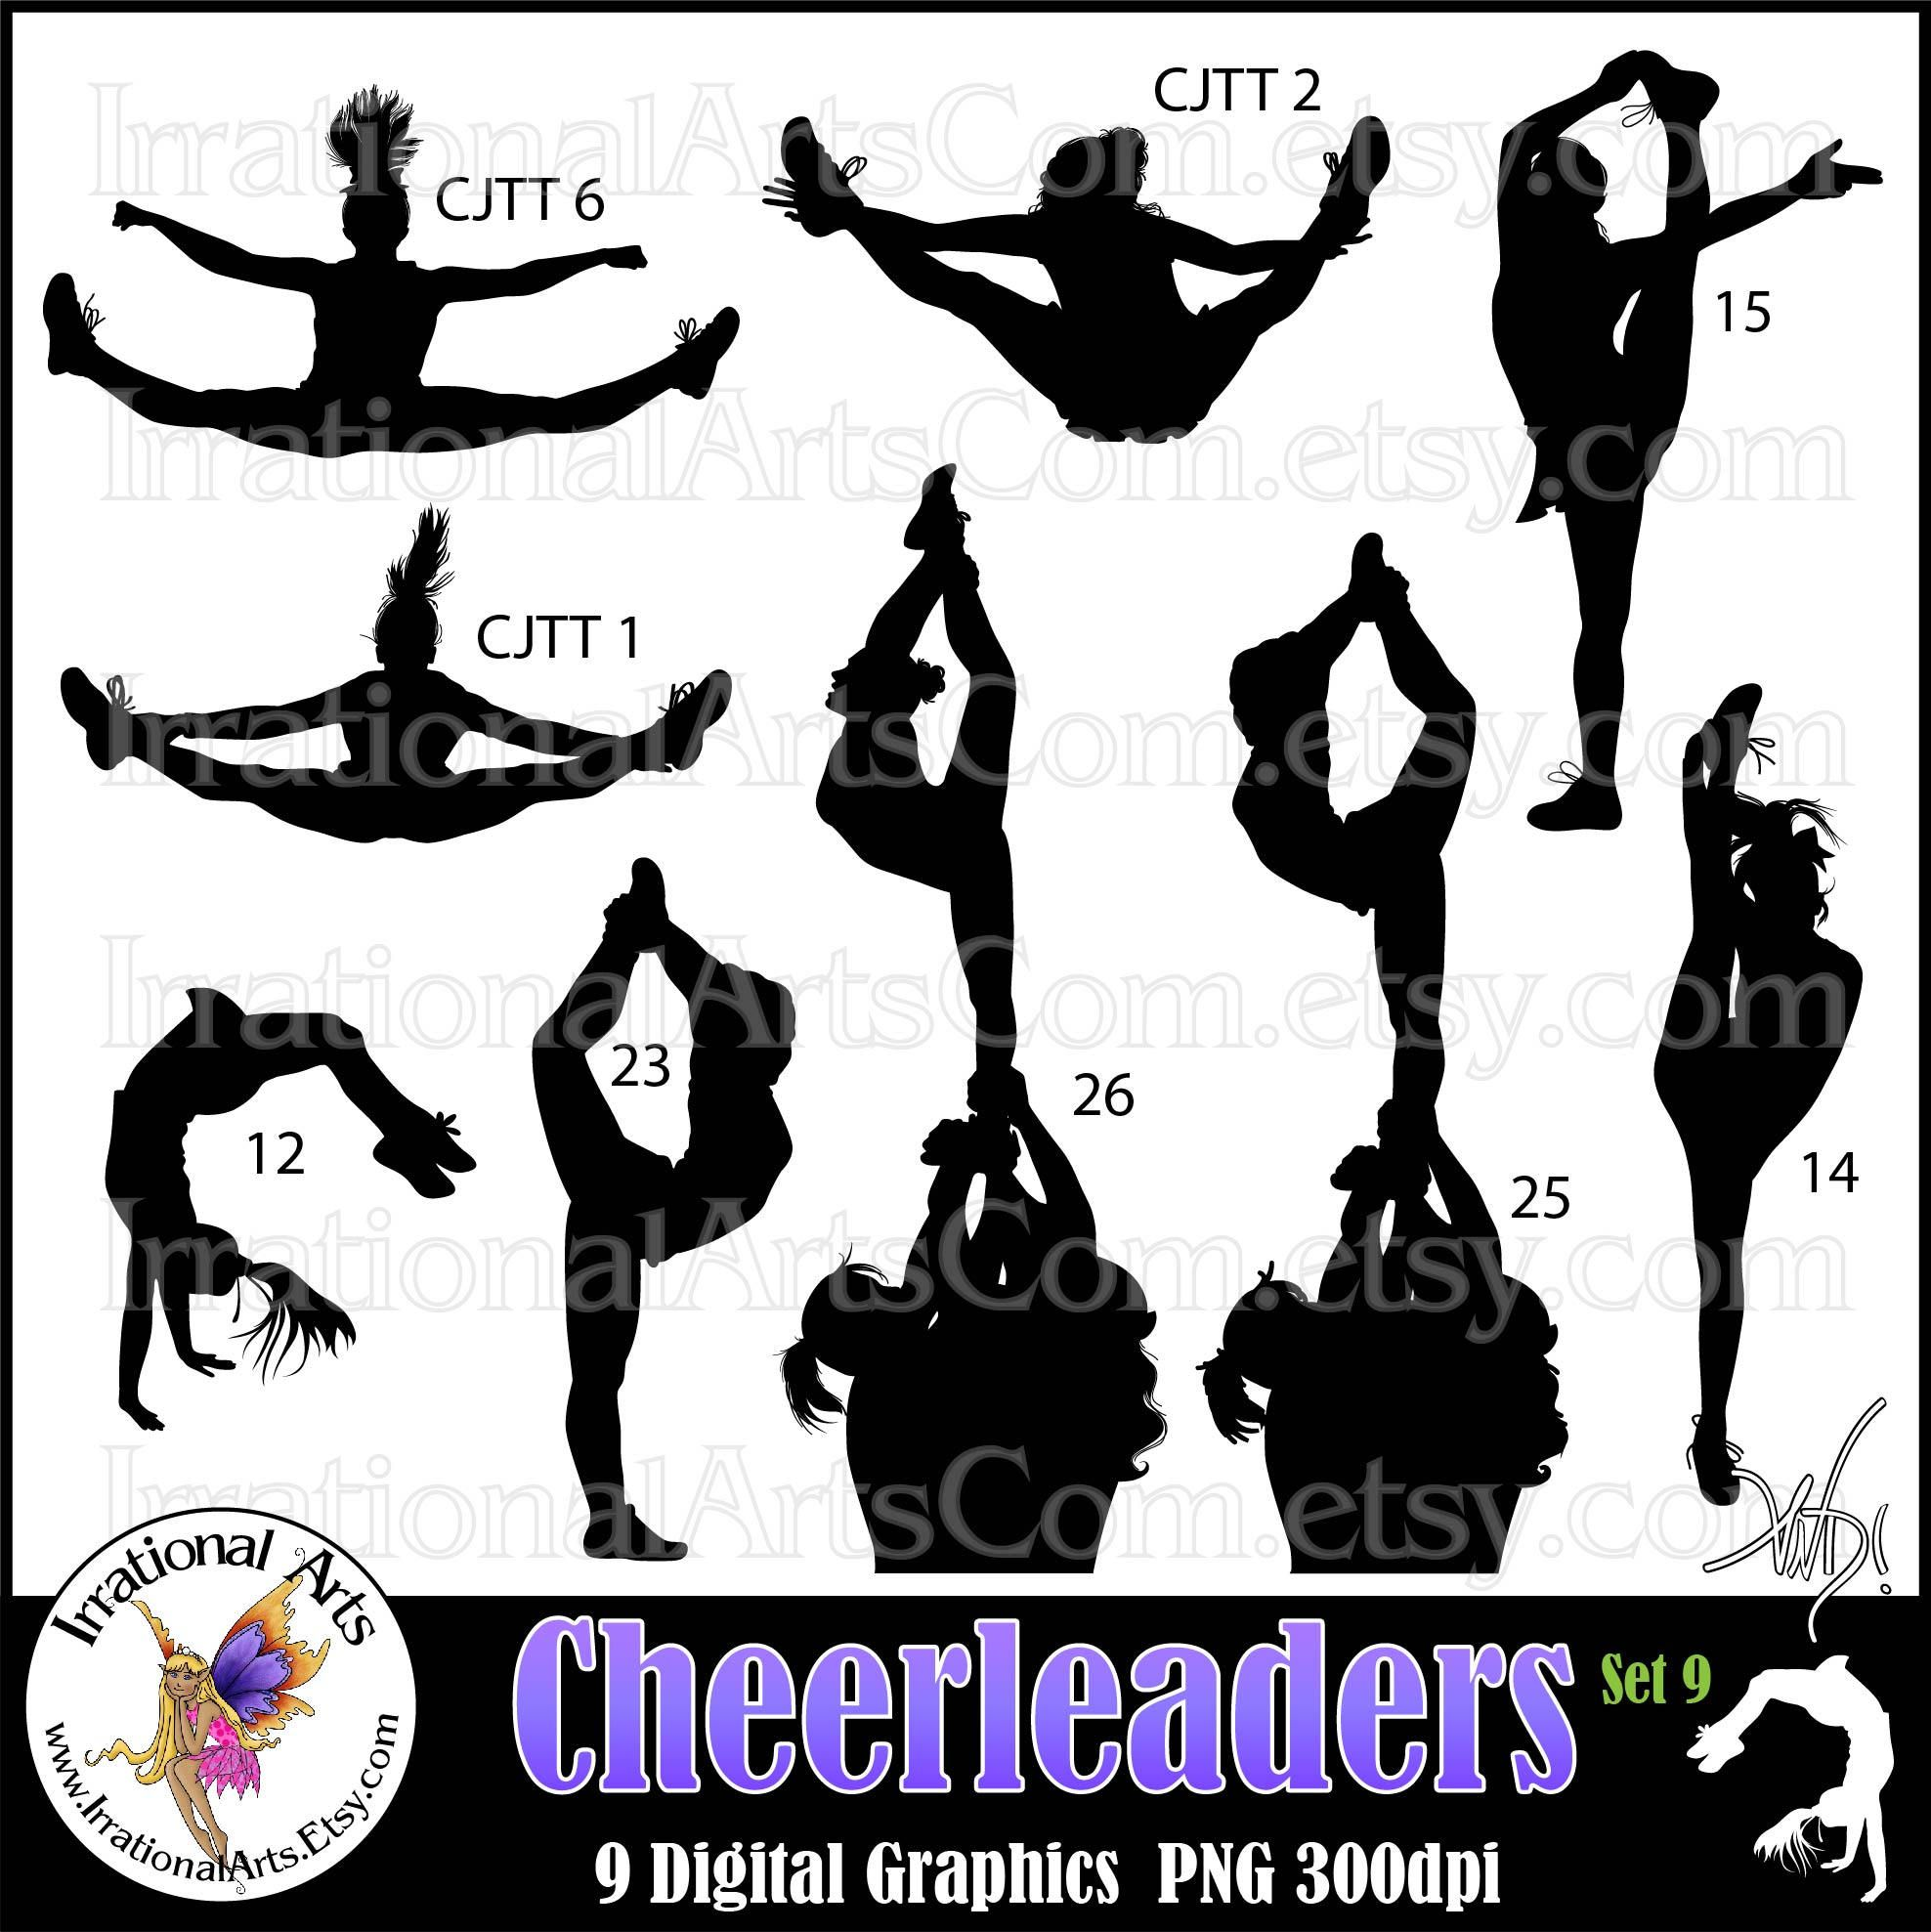 Cheerleading clipart scorpion, Cheerleading scorpion Transparent FREE for  download on WebStockReview 2020